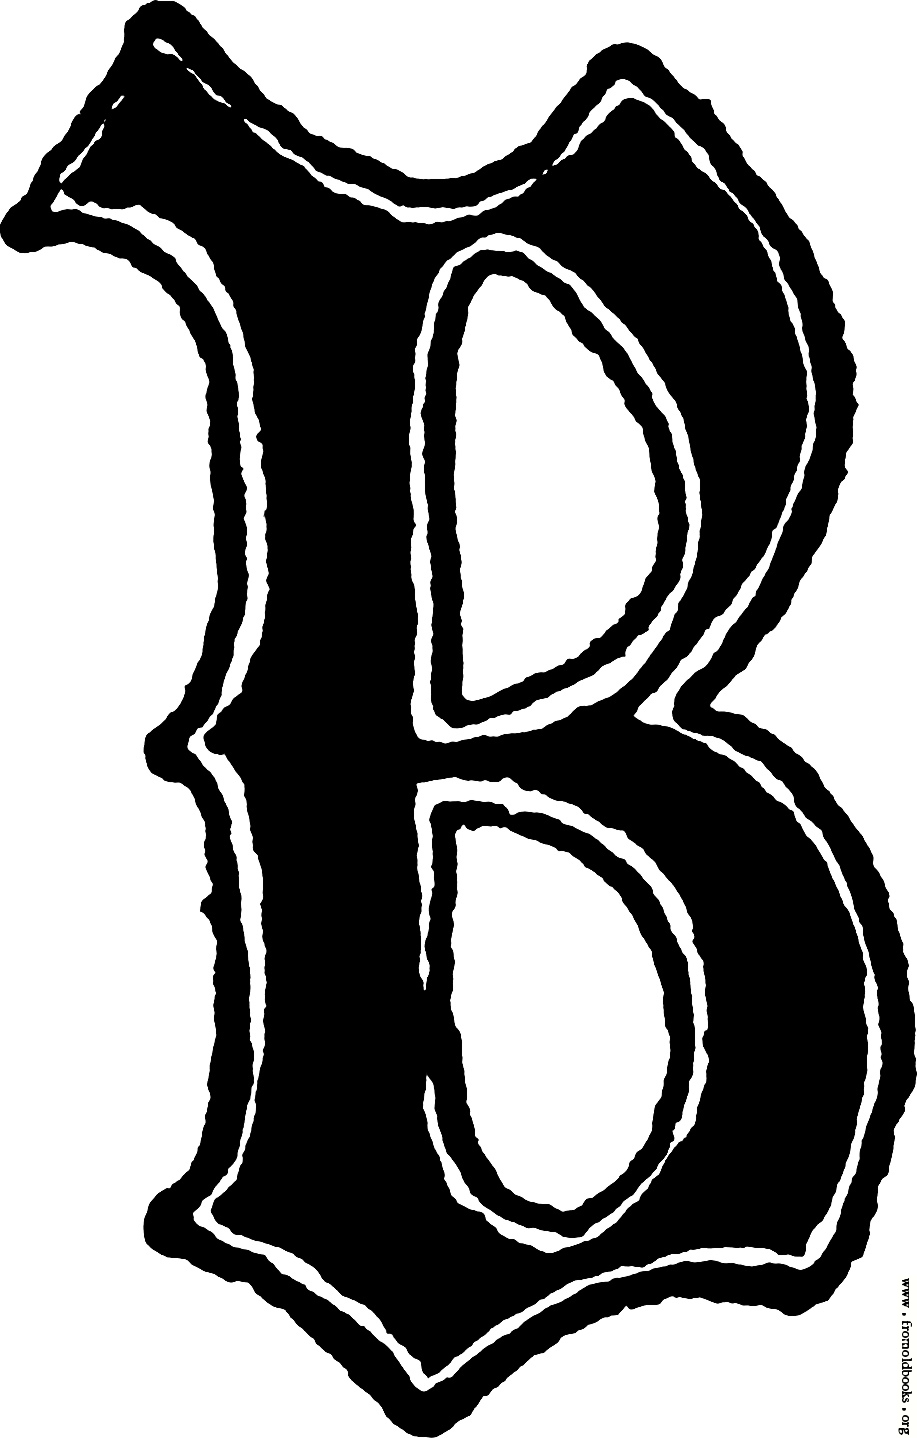 Letter B In Different Fonts : letter, different, fonts, Letter, Style, Library